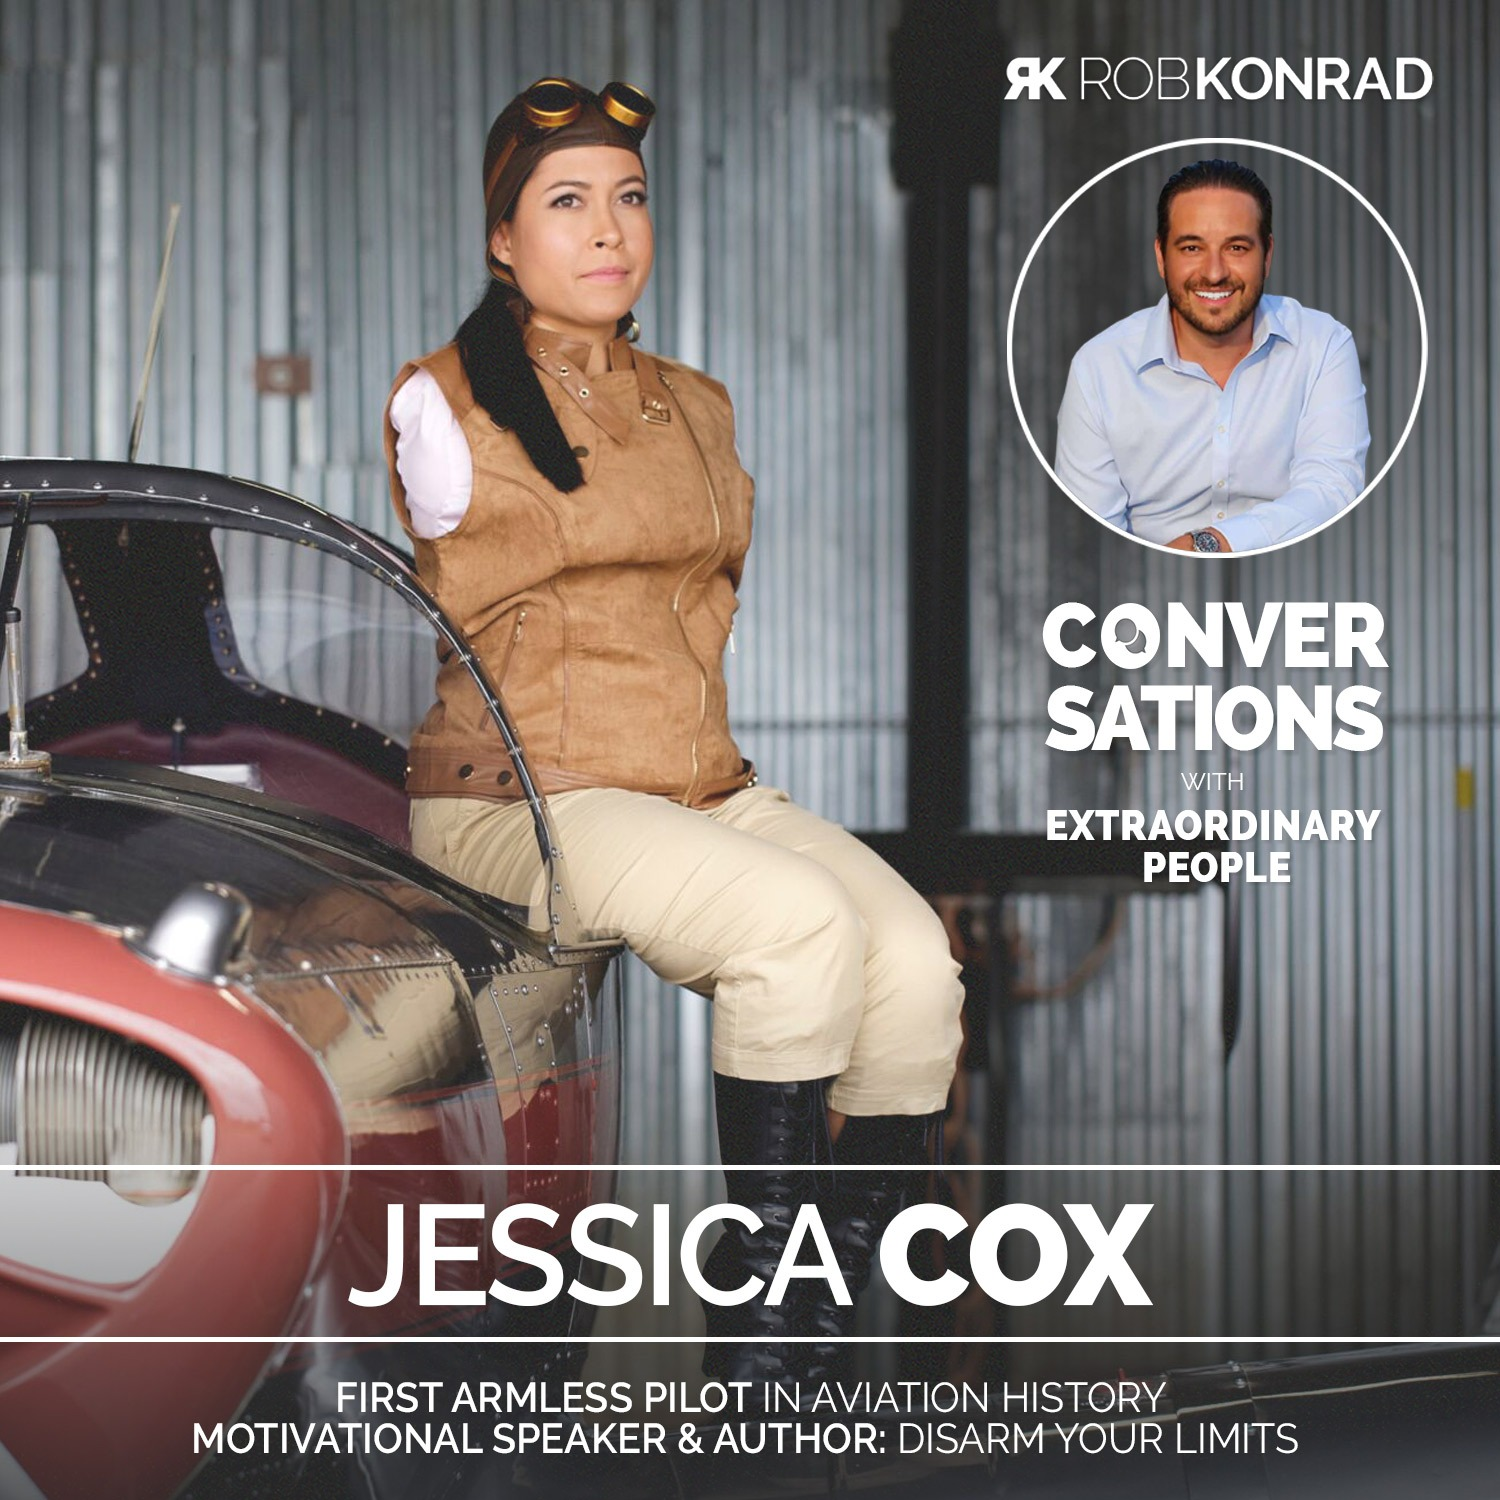 005. The World's First Pilot Born Without Arms: Jessica Cox